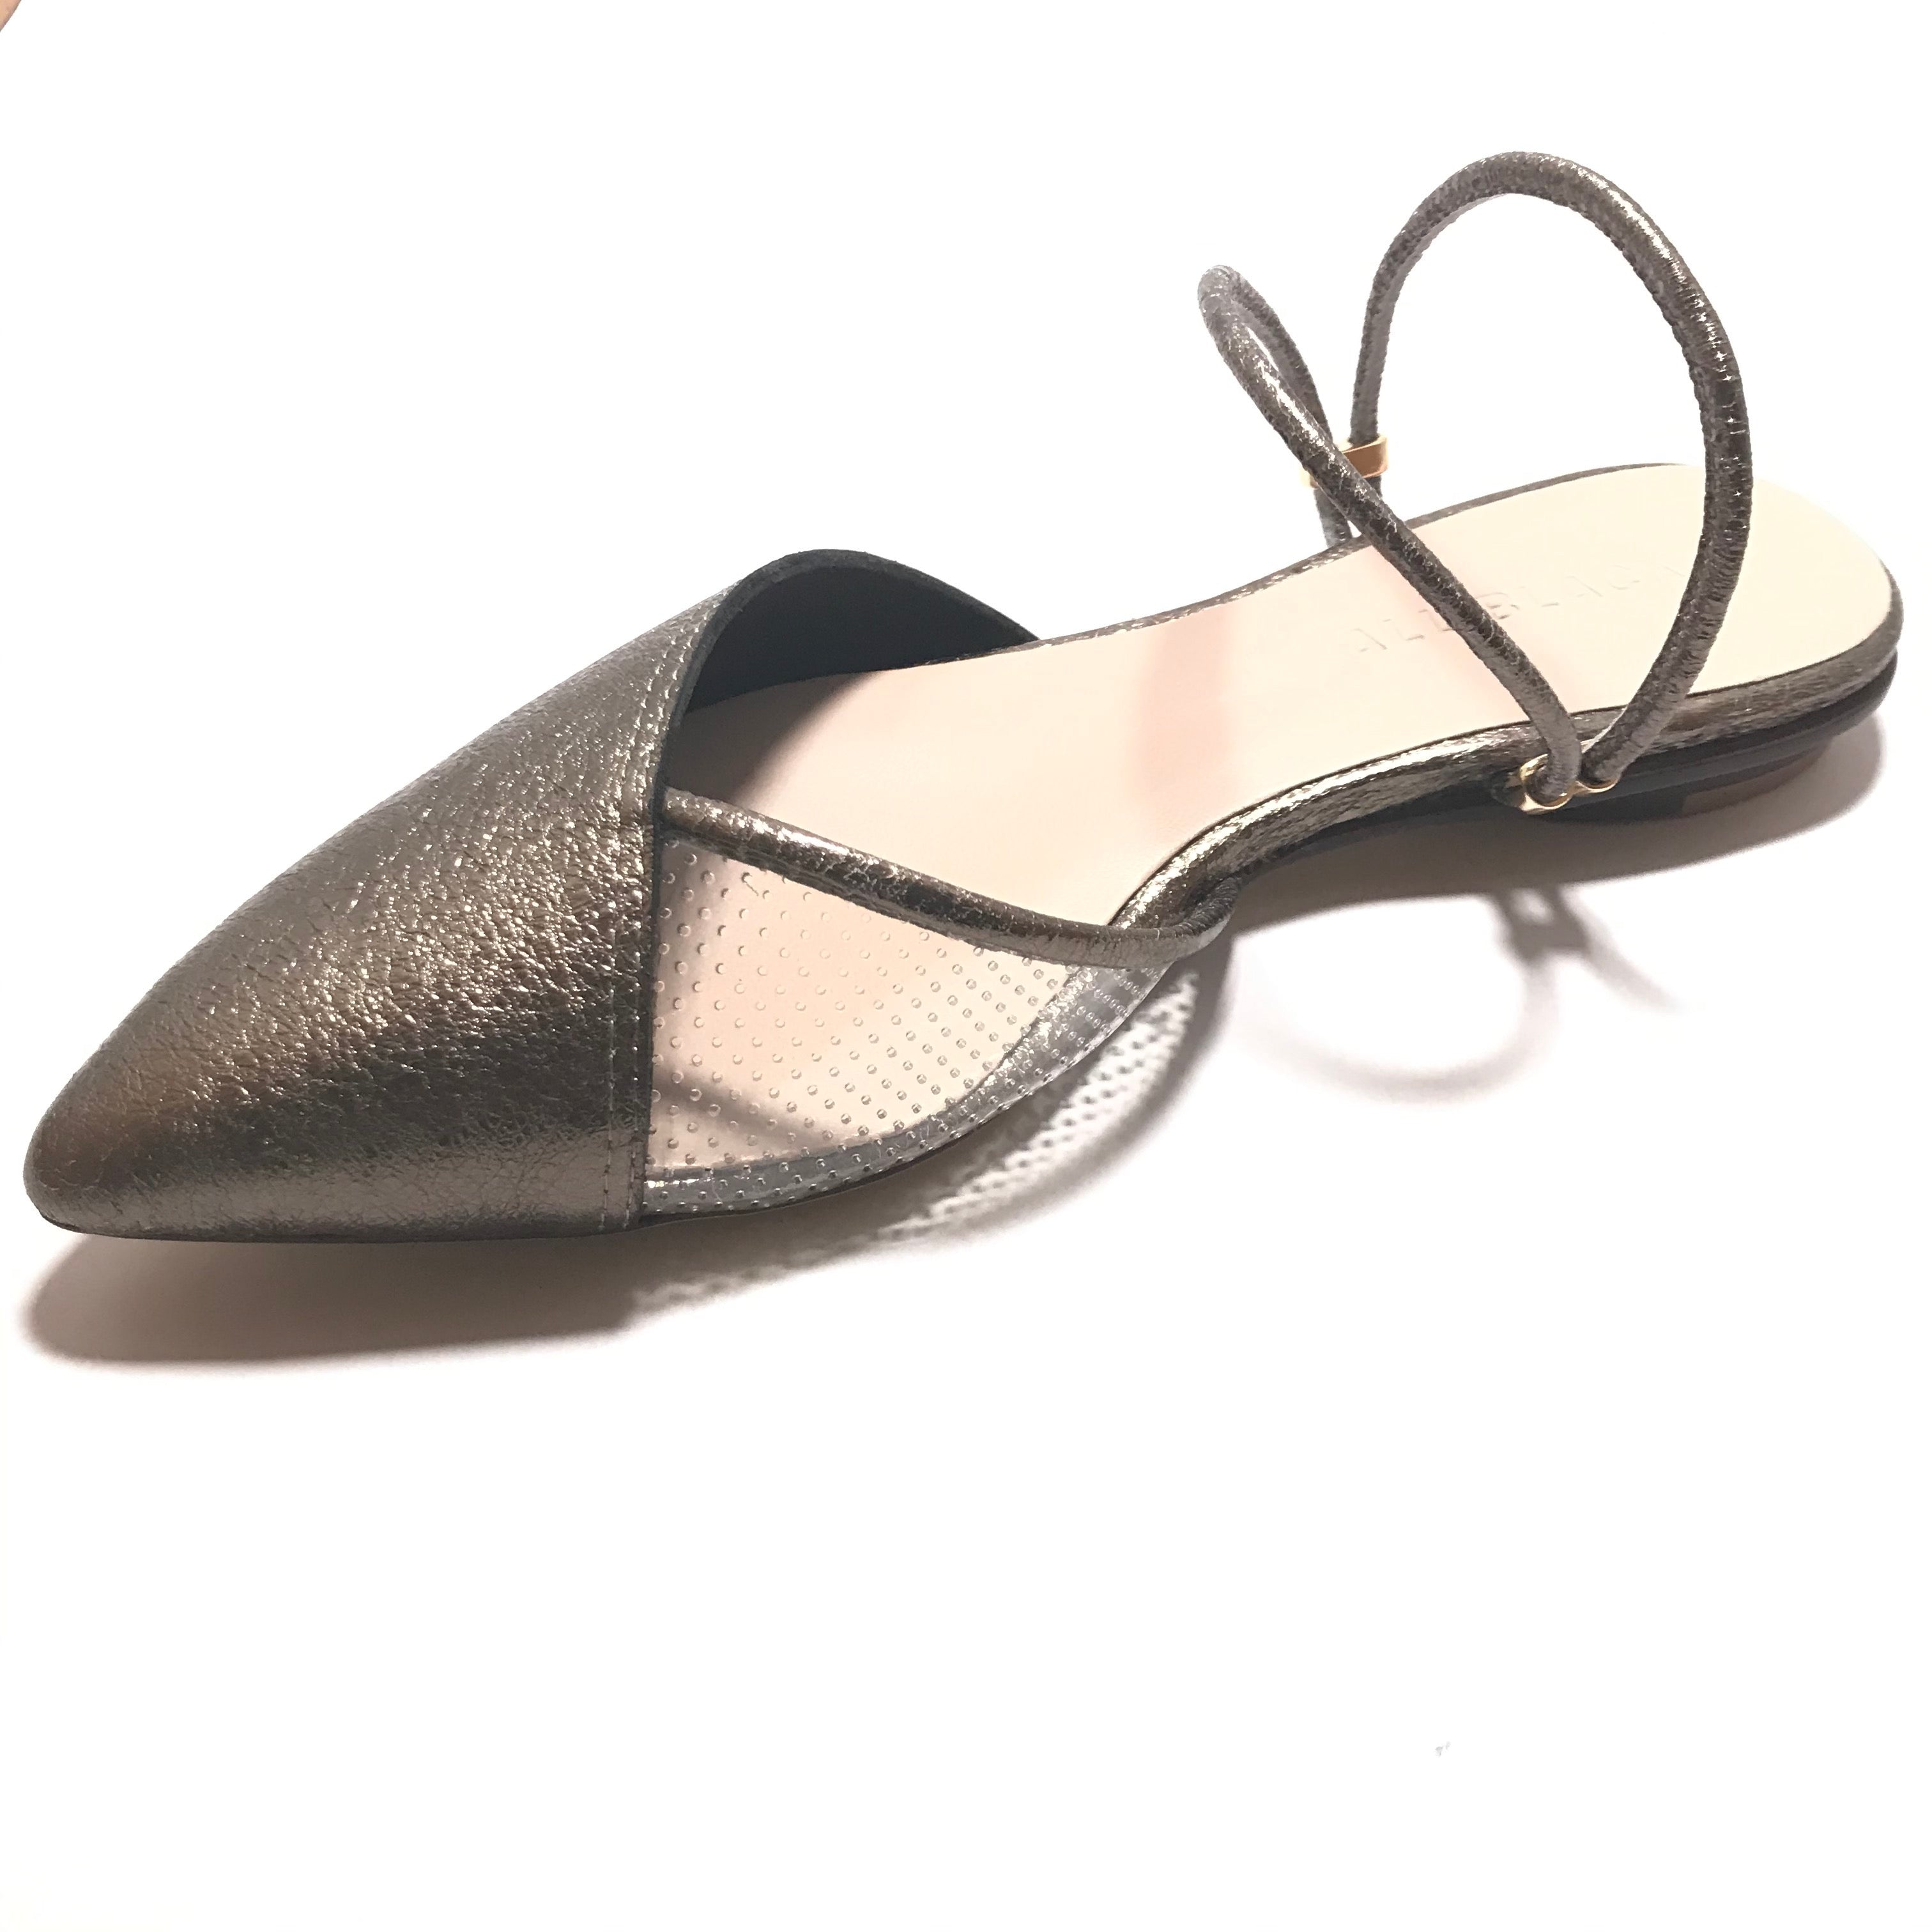 "Side view of All Black pointed toe shoes with a heel of 1/4"" height with a double elastic ankle strap in the color of silver"